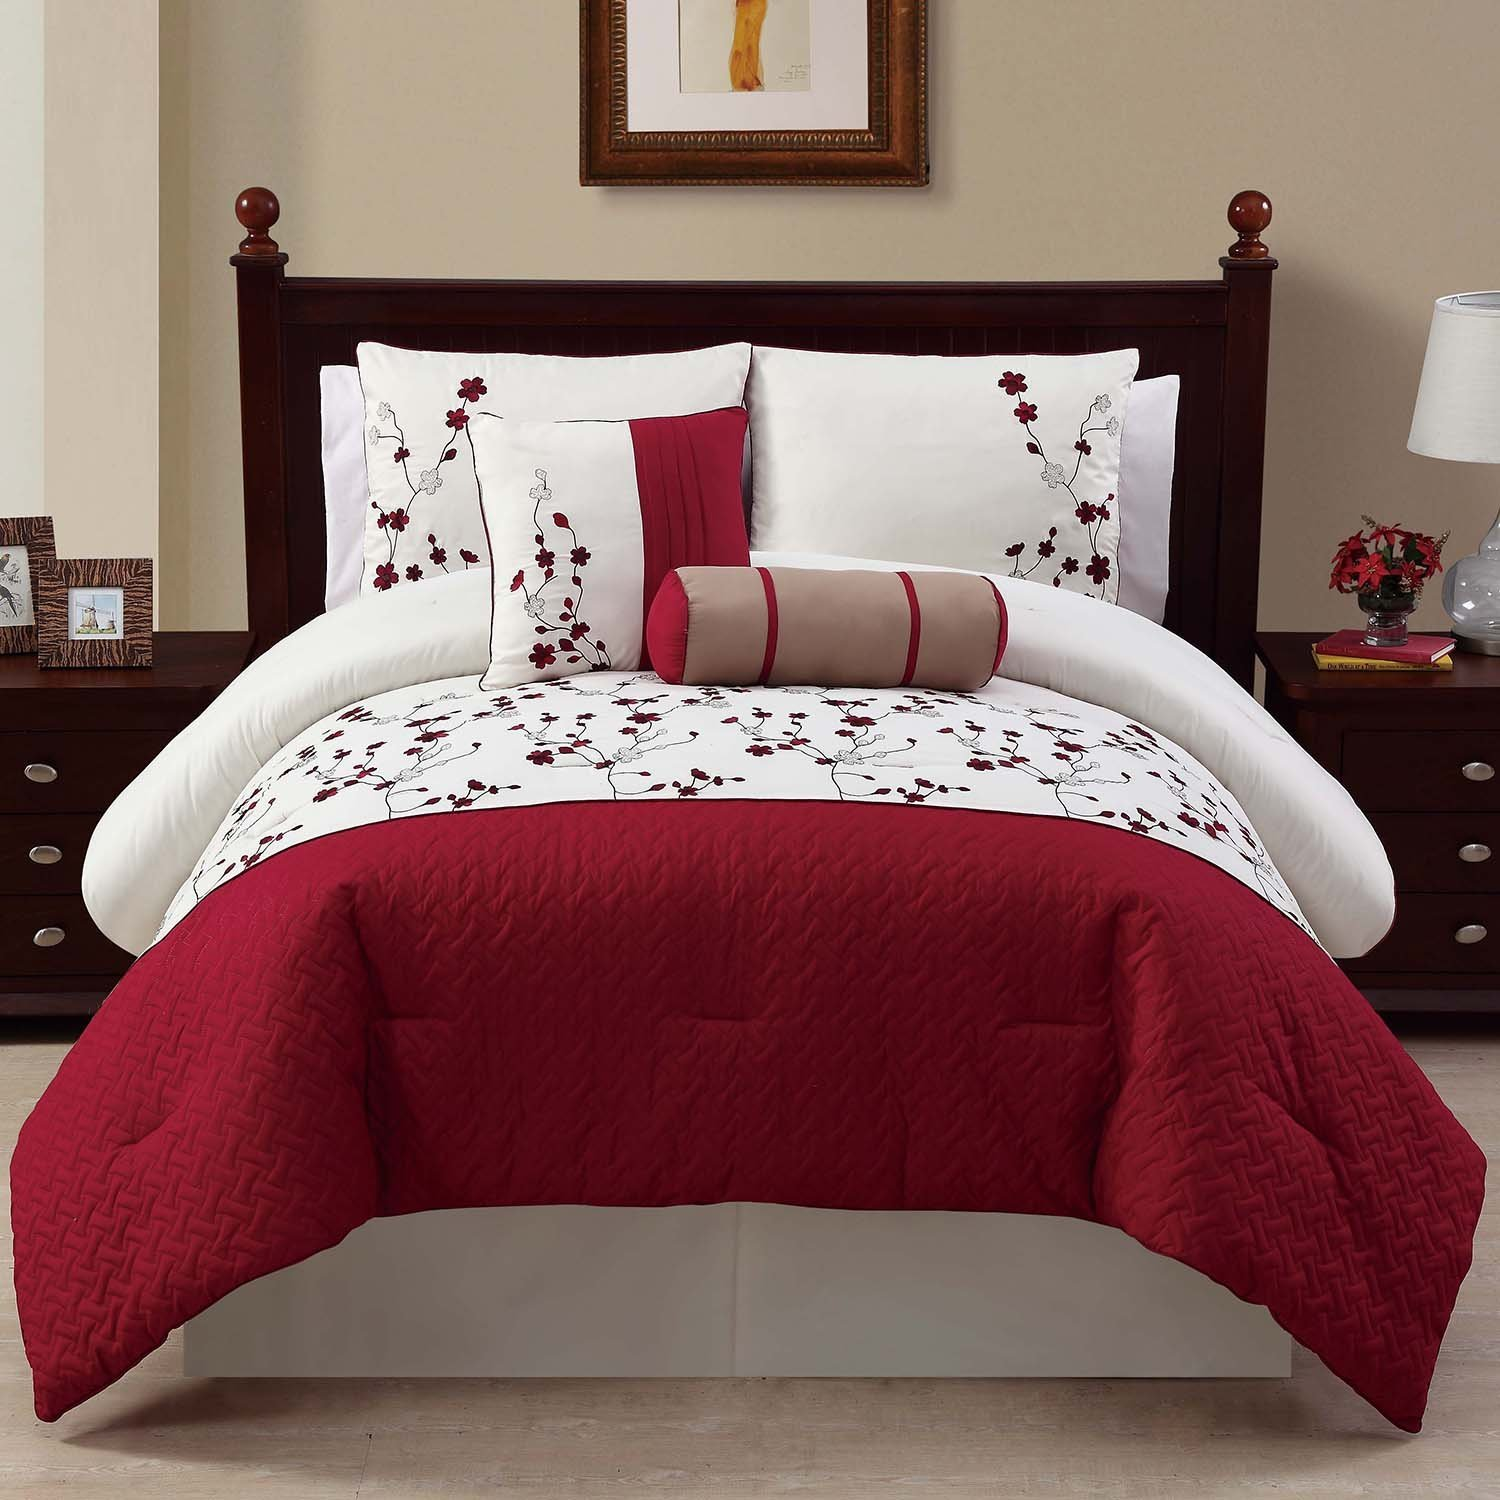 Asian inspired comforters duvet covers bedding for Asian themed bedroom